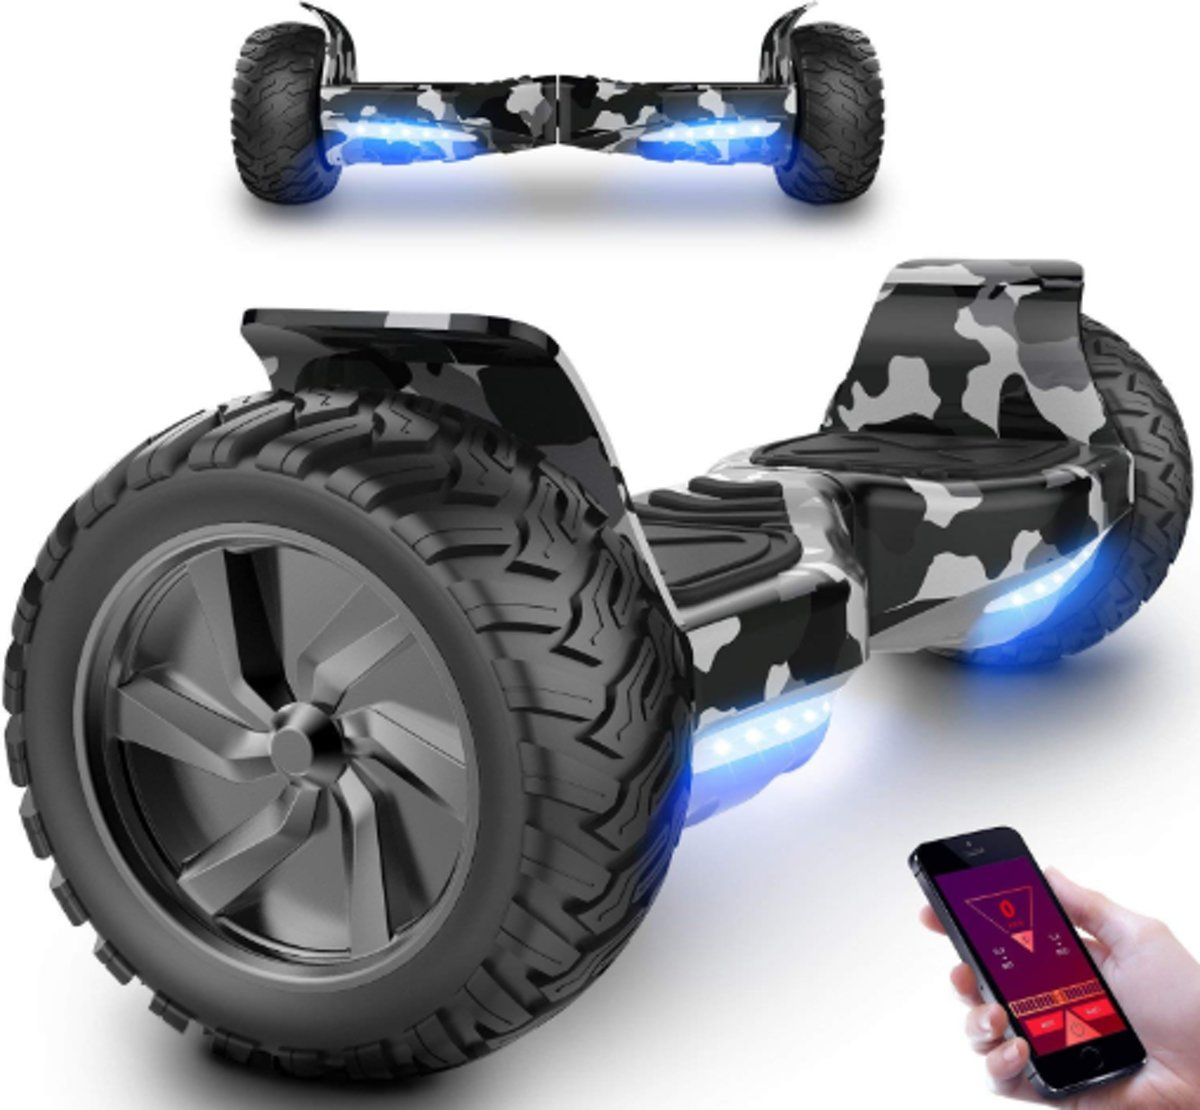 I-CIGO HOVERBOARD HUMMER balance board  ALLE TERREINEN 8.5 INCHES Off Road App Functie met V5 Bluetooth speaker&TAOTAO 2018 SOFTWARE ( Camouflage)